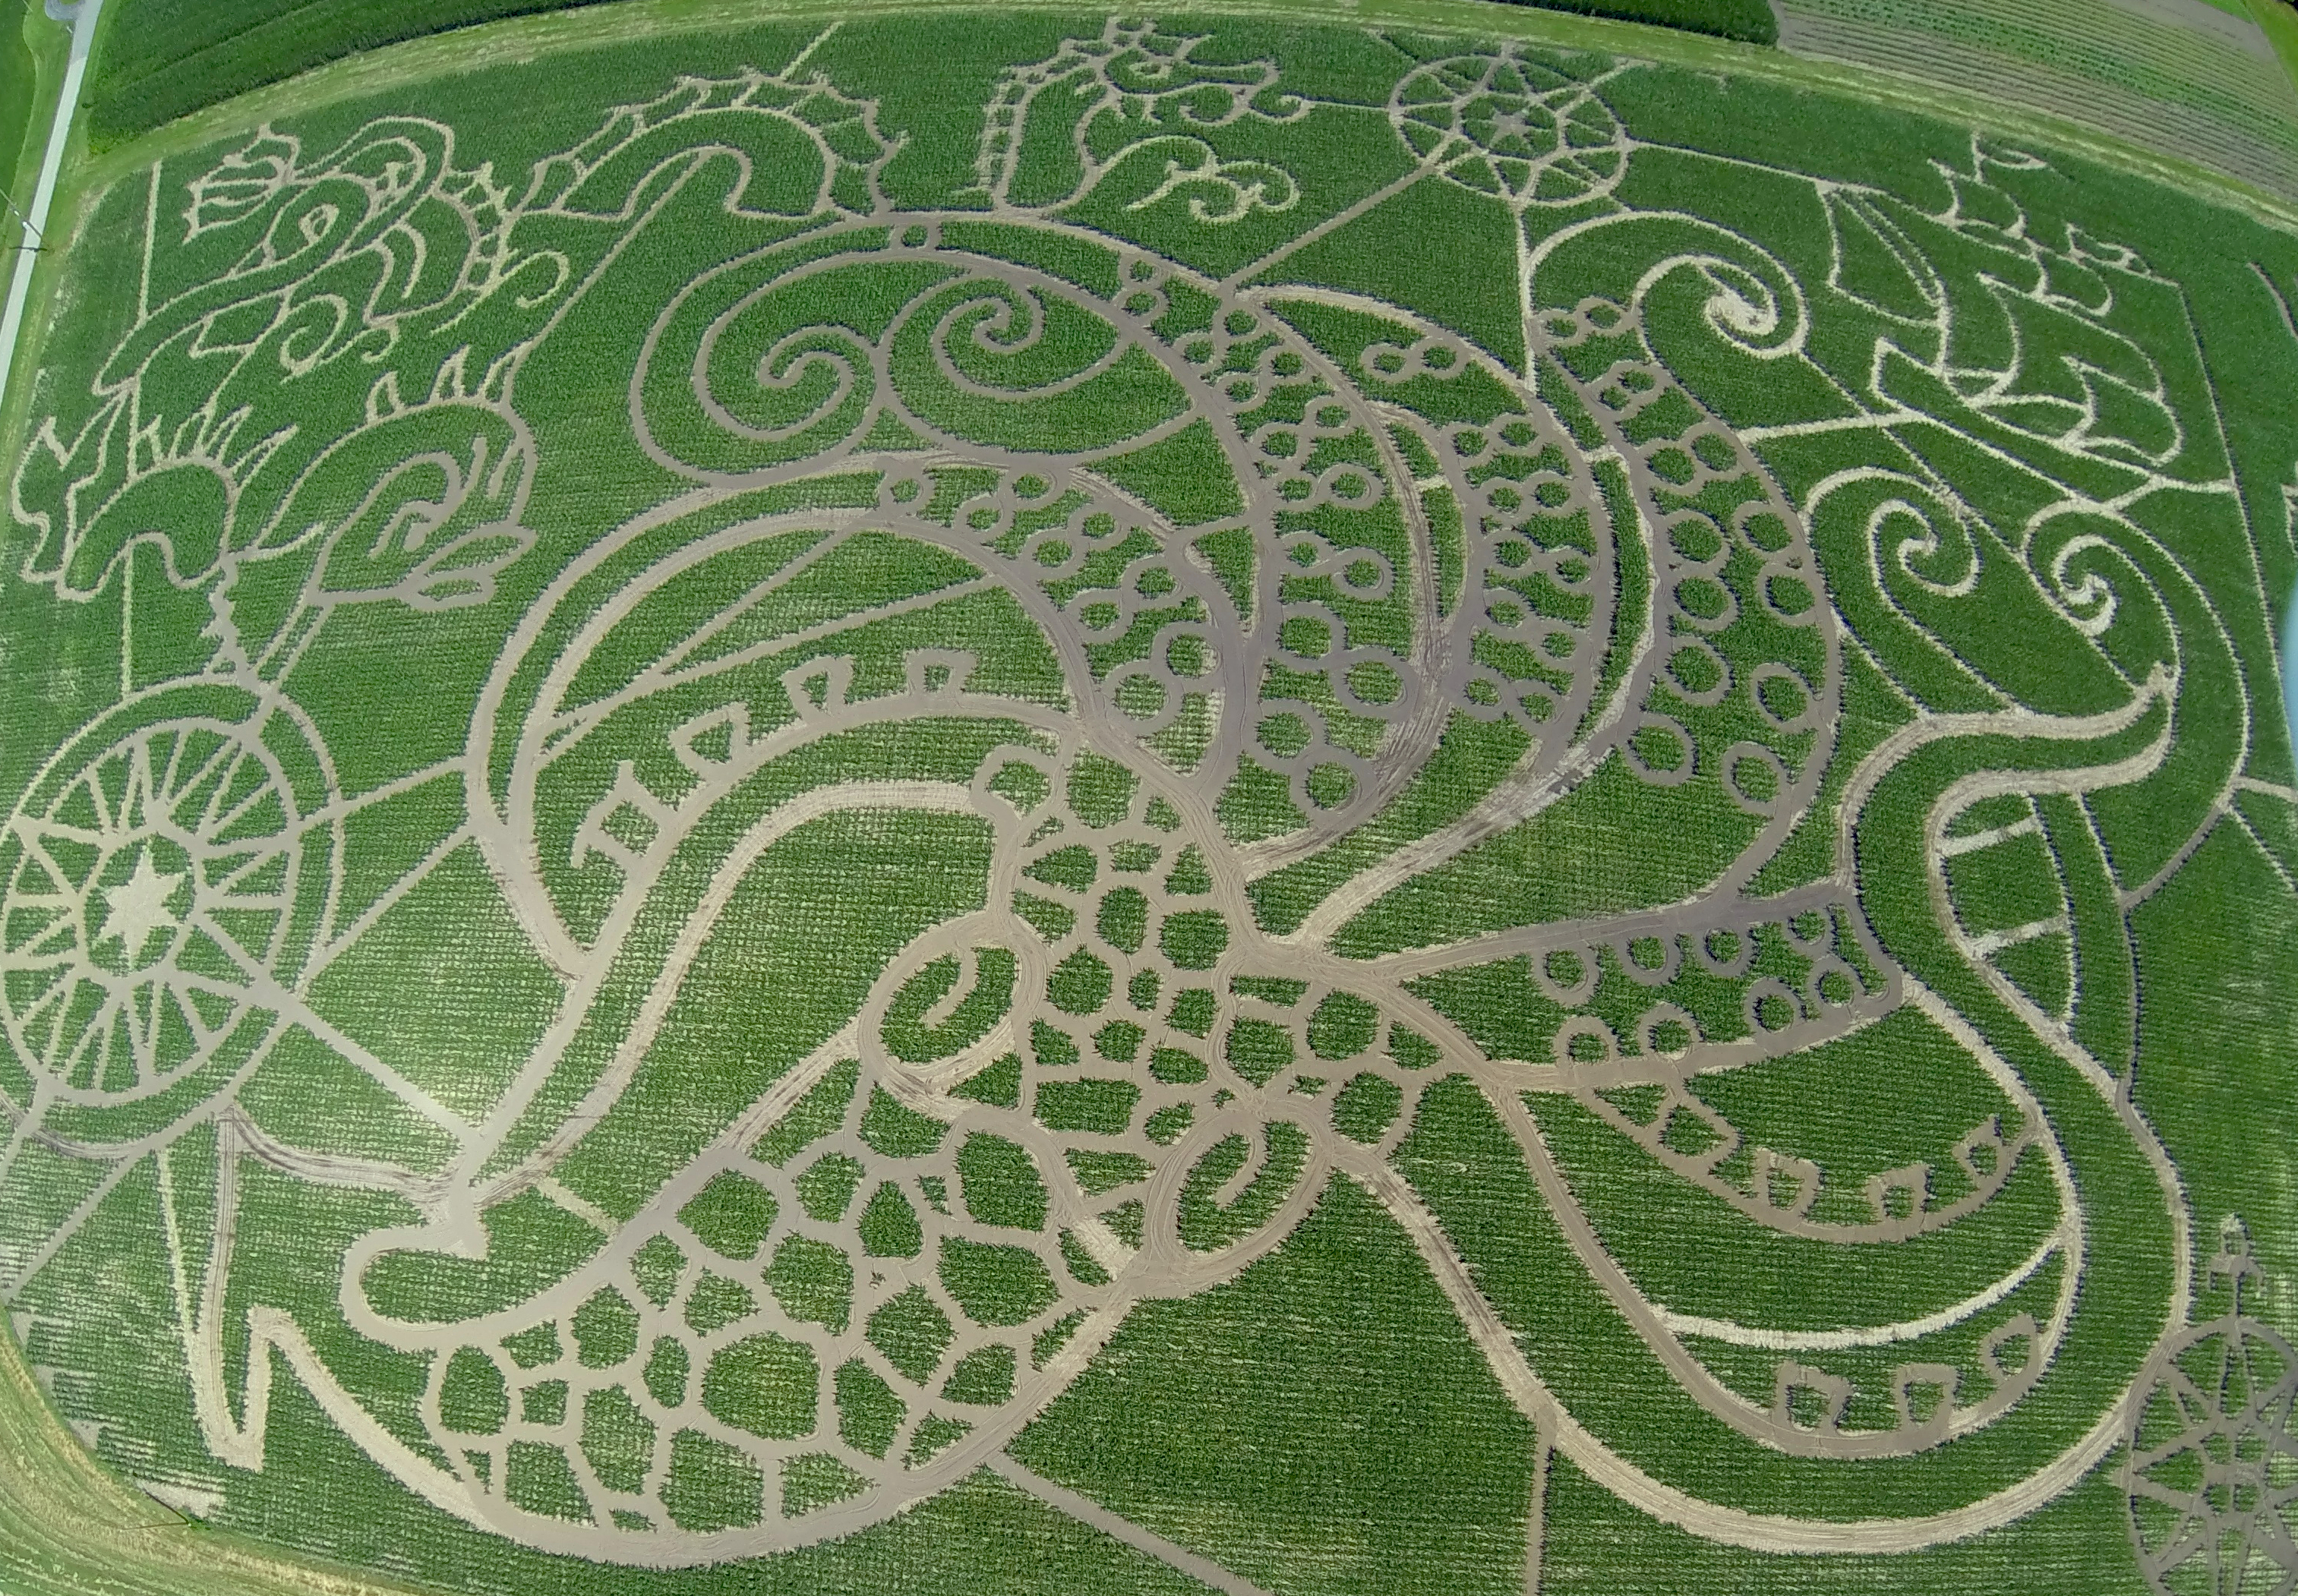 Treinen Farm 2013 Sea Monster Corn Maze